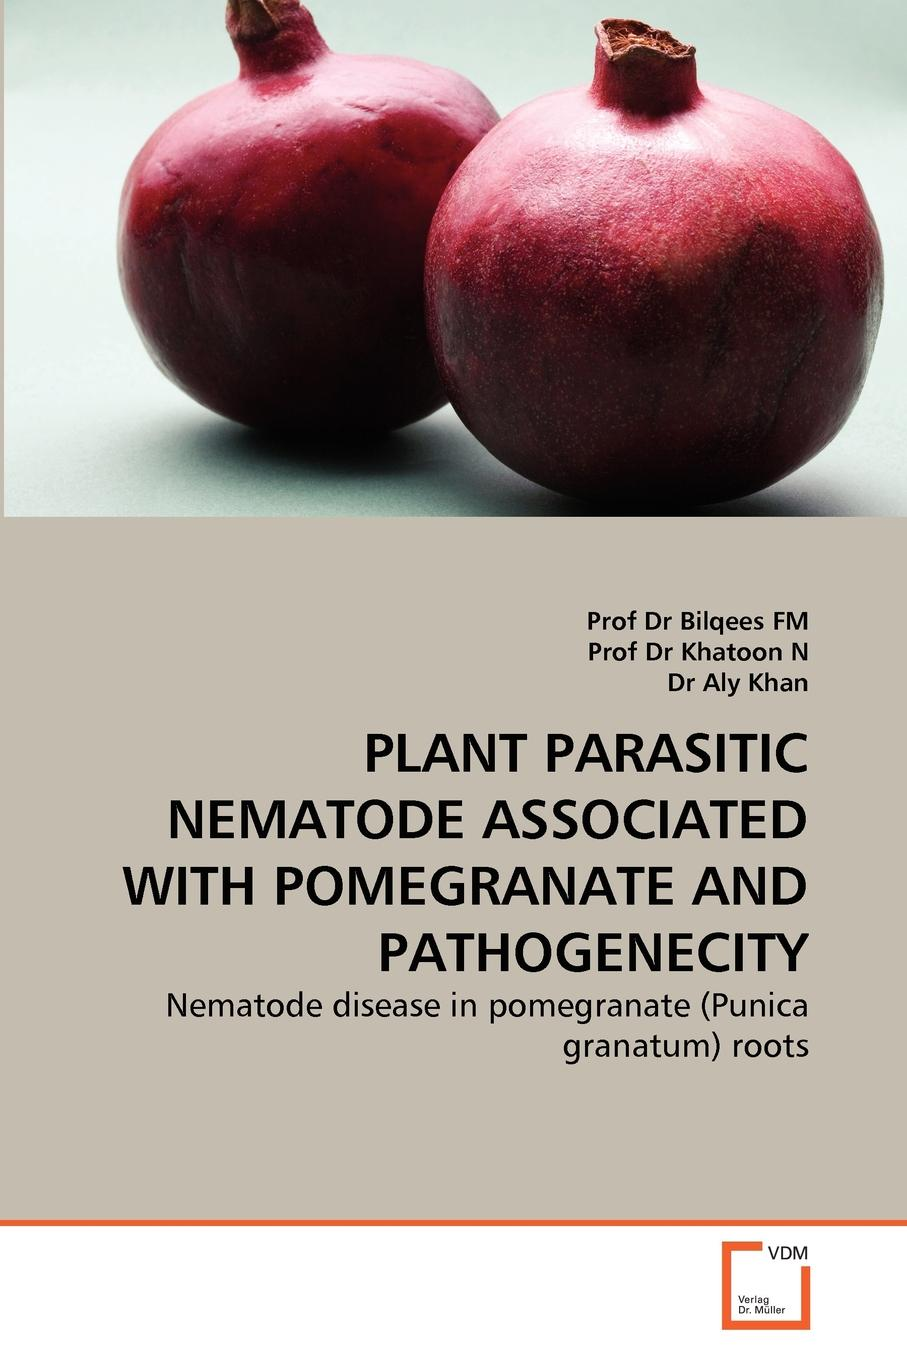 Prof Dr Bilqees FM, Prof Dr Khatoon N, Dr Aly Khan PLANT PARASITIC NEMATODE ASSOCIATED WITH POMEGRANATE AND PATHOGENECITY недорго, оригинальная цена